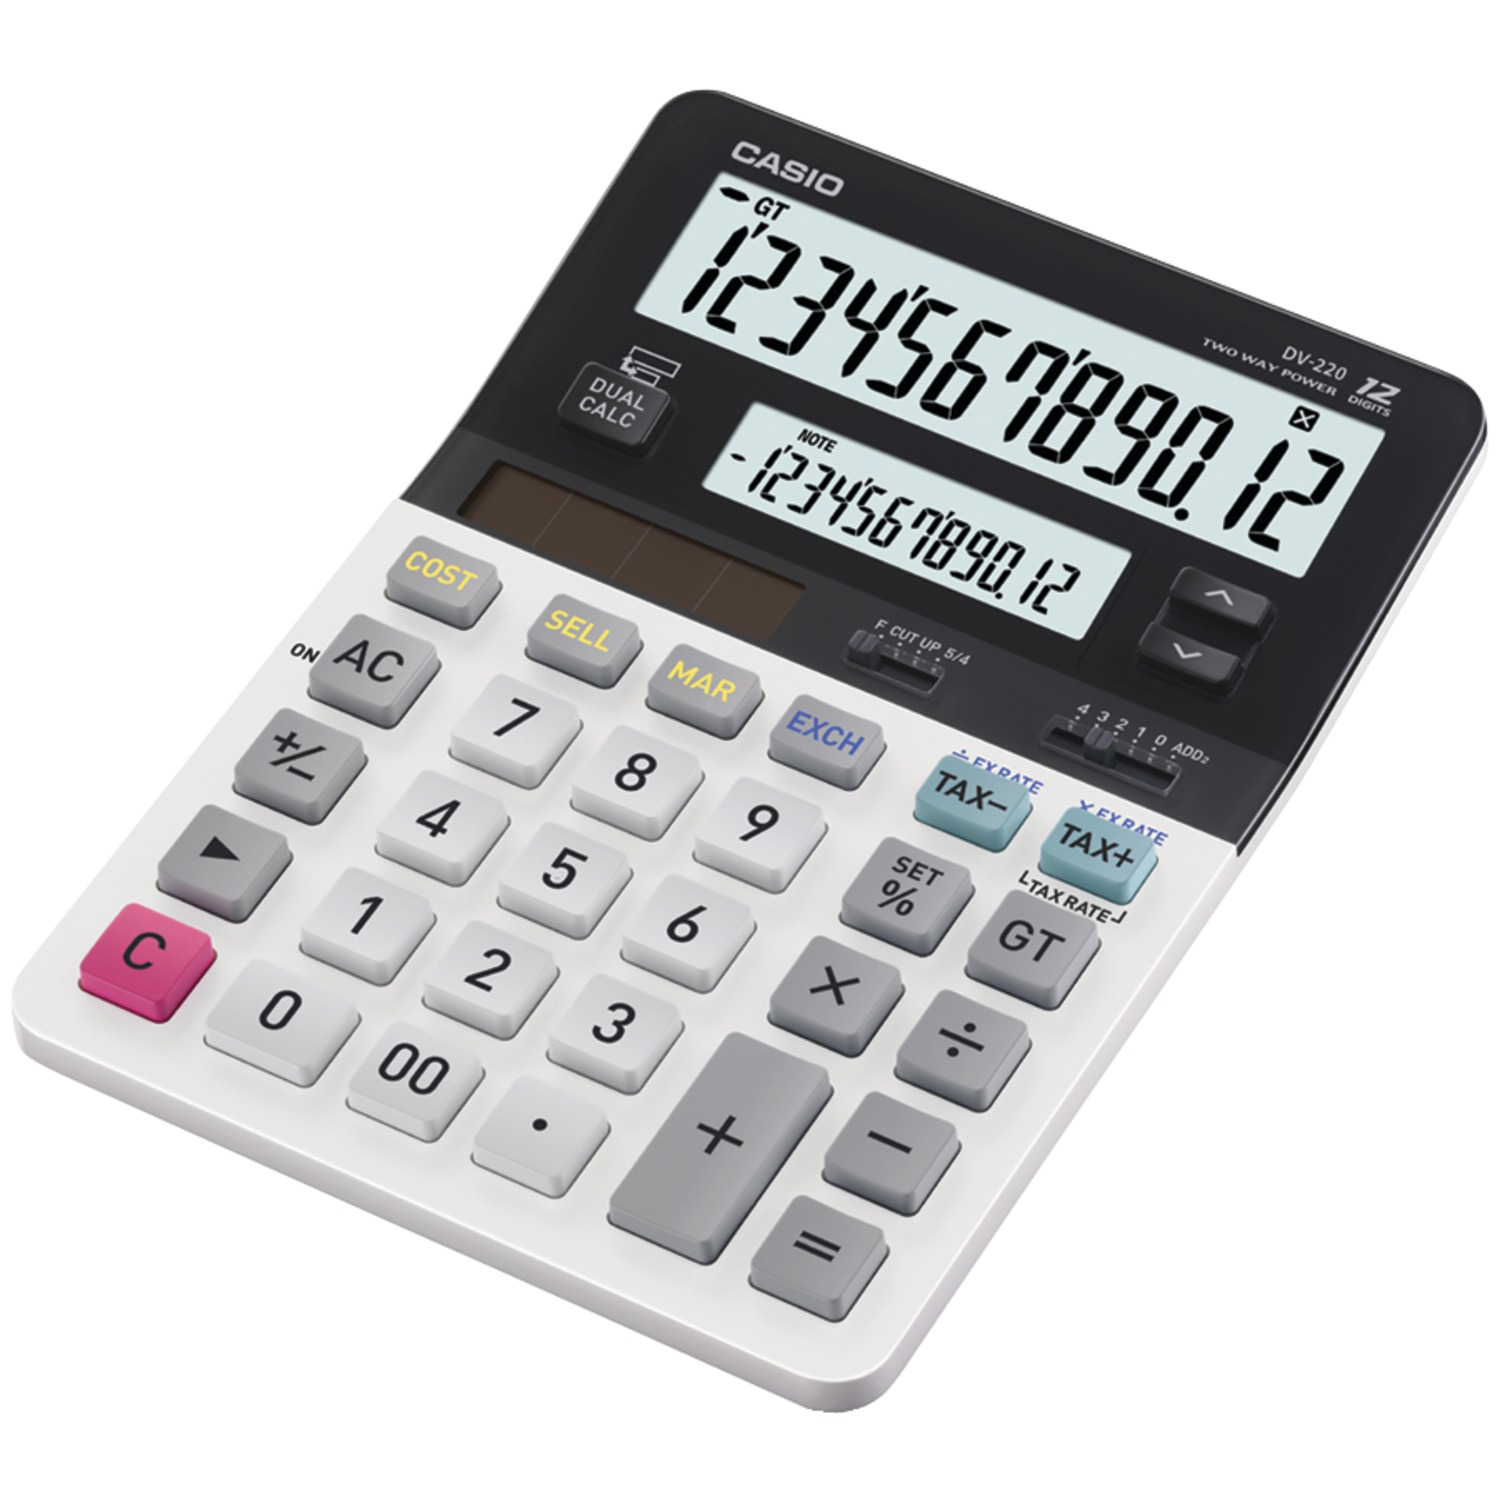 CASIO� DV-220 Dual Display Desktop Solar CALCULATOR